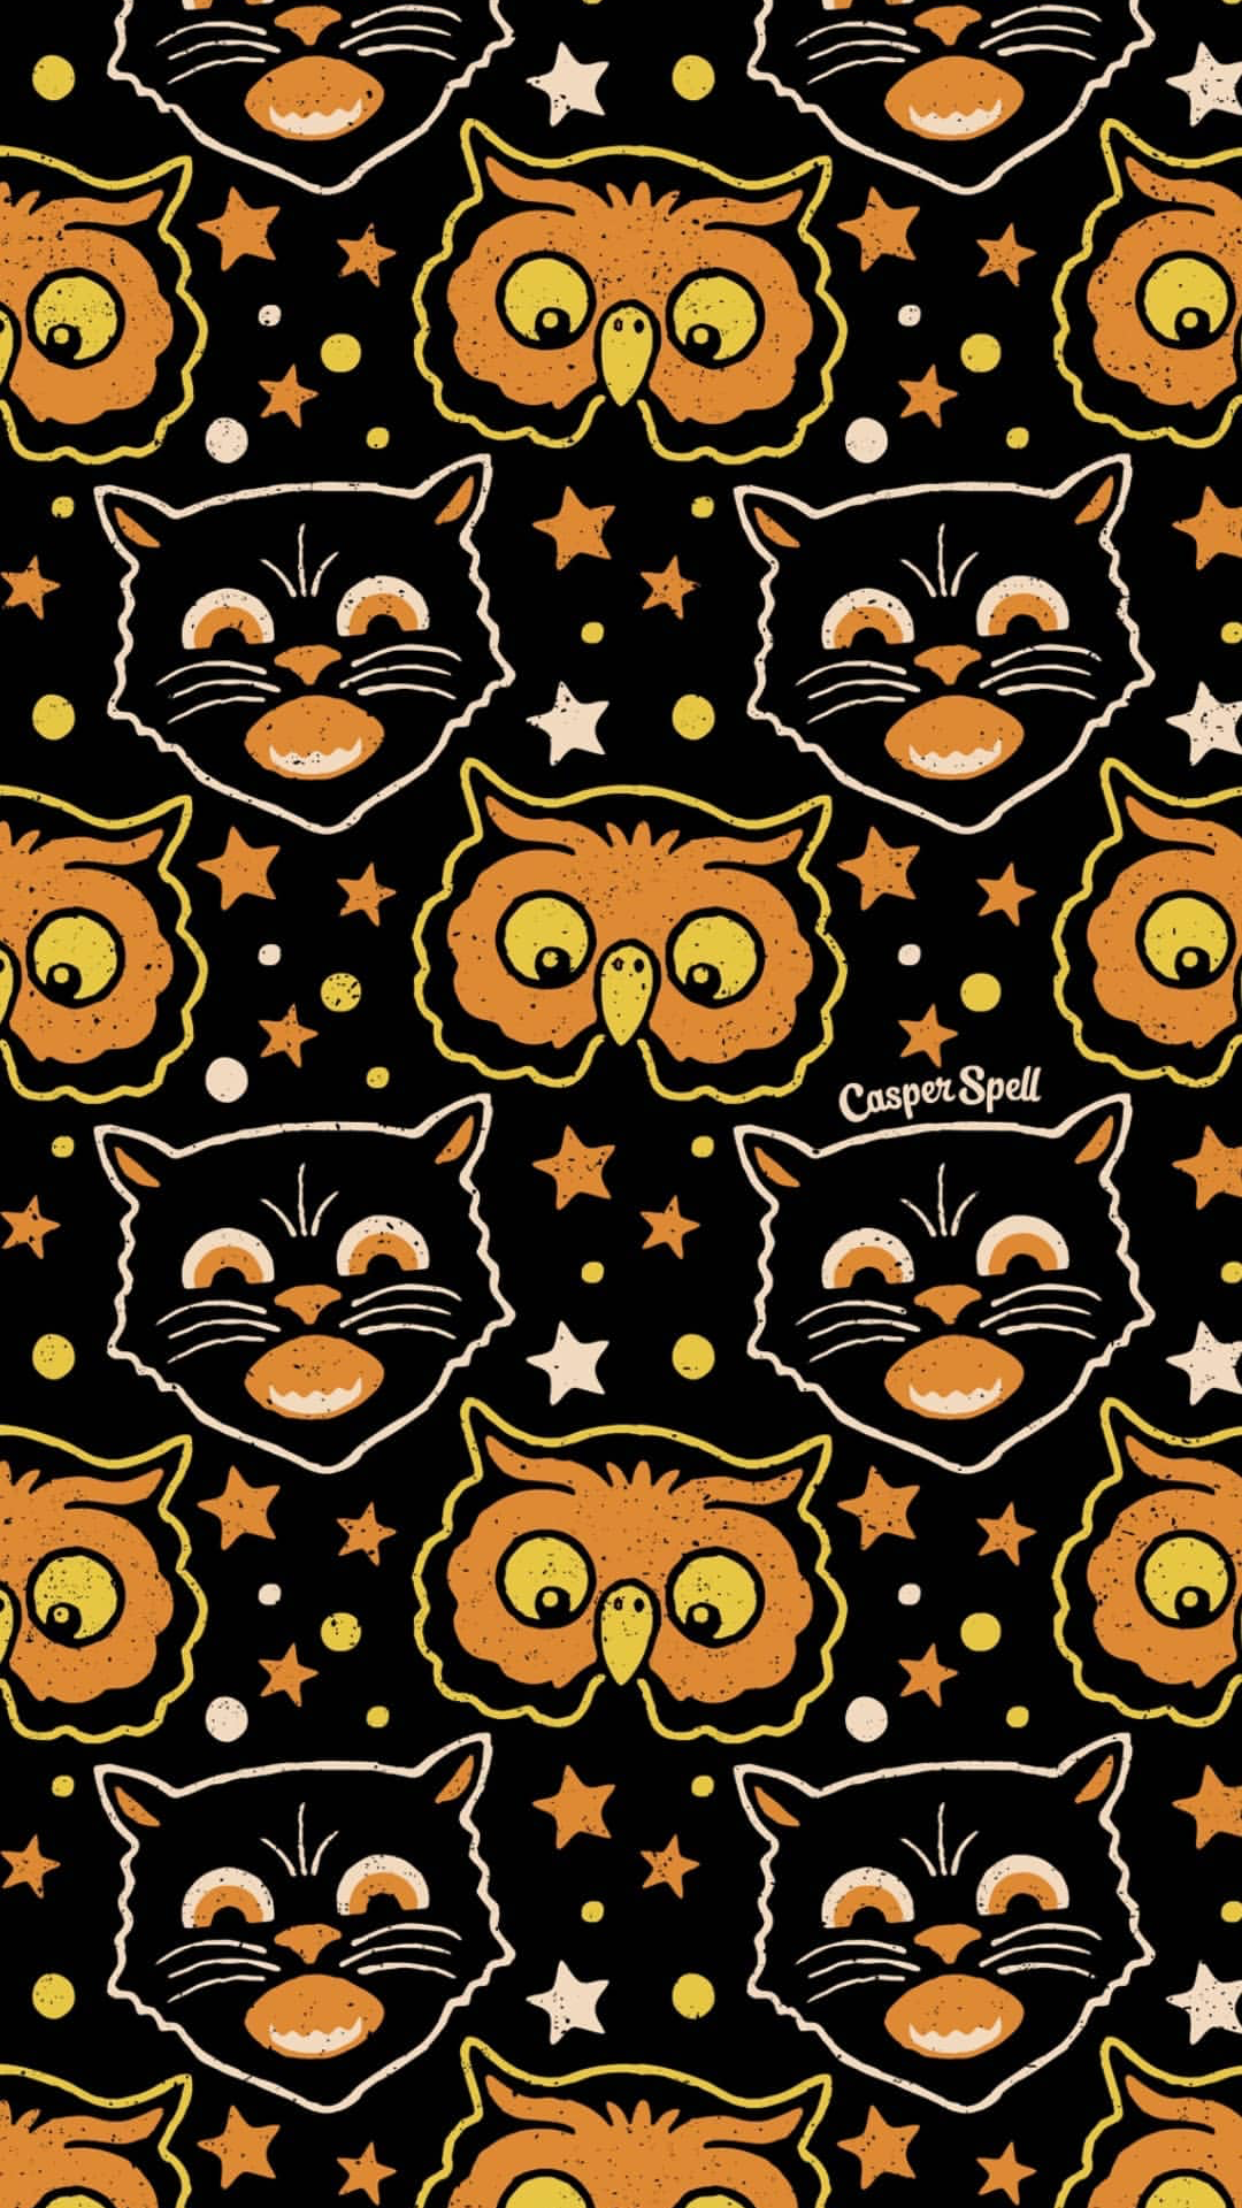 Retro Black Cat And Owl Halloween By Artist Casper Spell Wallpaper Background Lock Screen For Ipho Vintage Halloween Art Halloween Wallpaper Retro Halloween